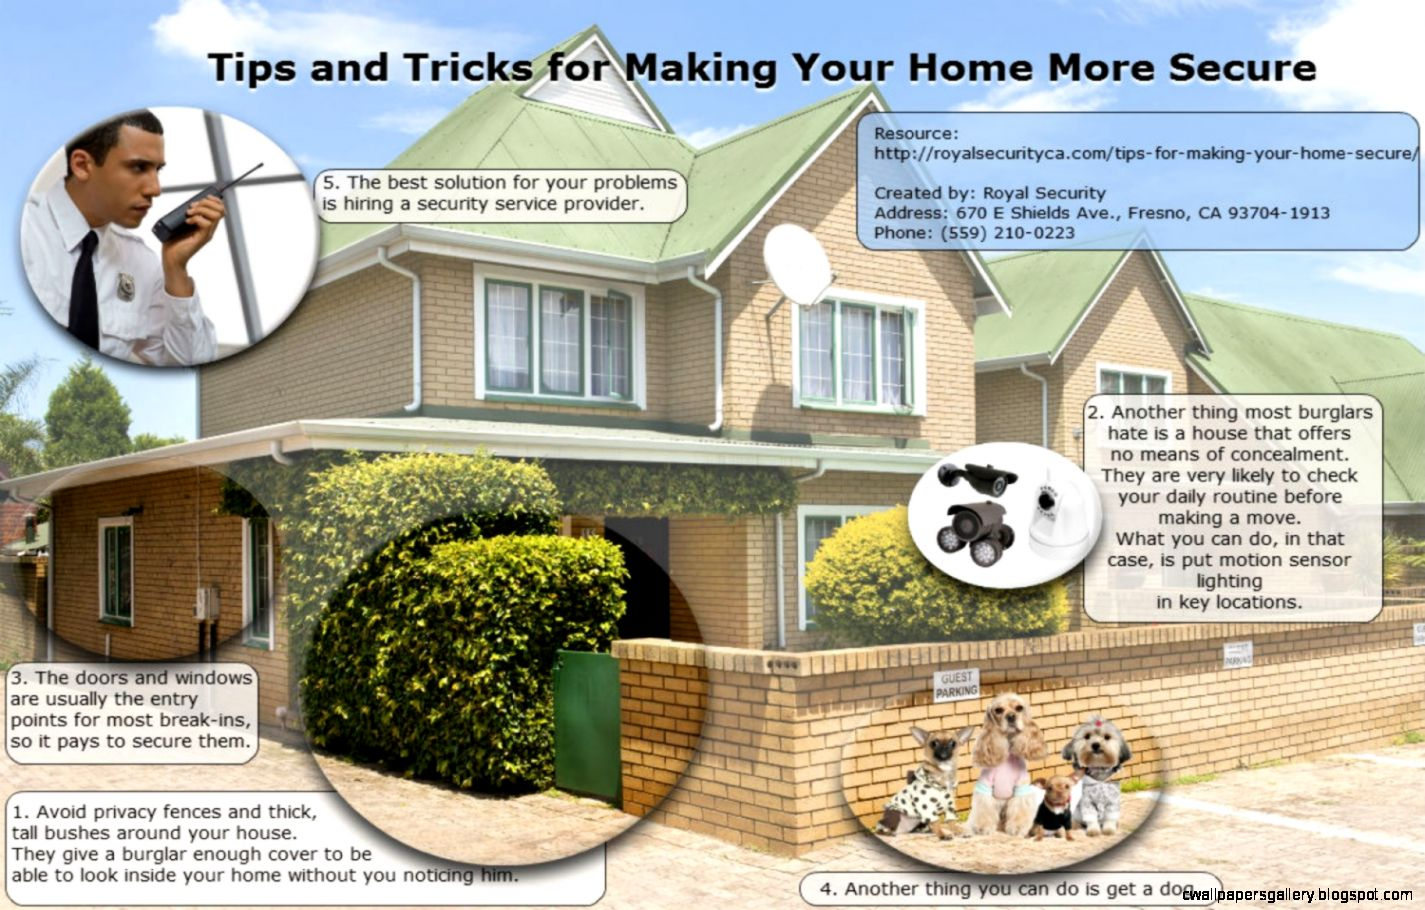 Tips and Tricks for Making Your Home More Secure by Royal Security